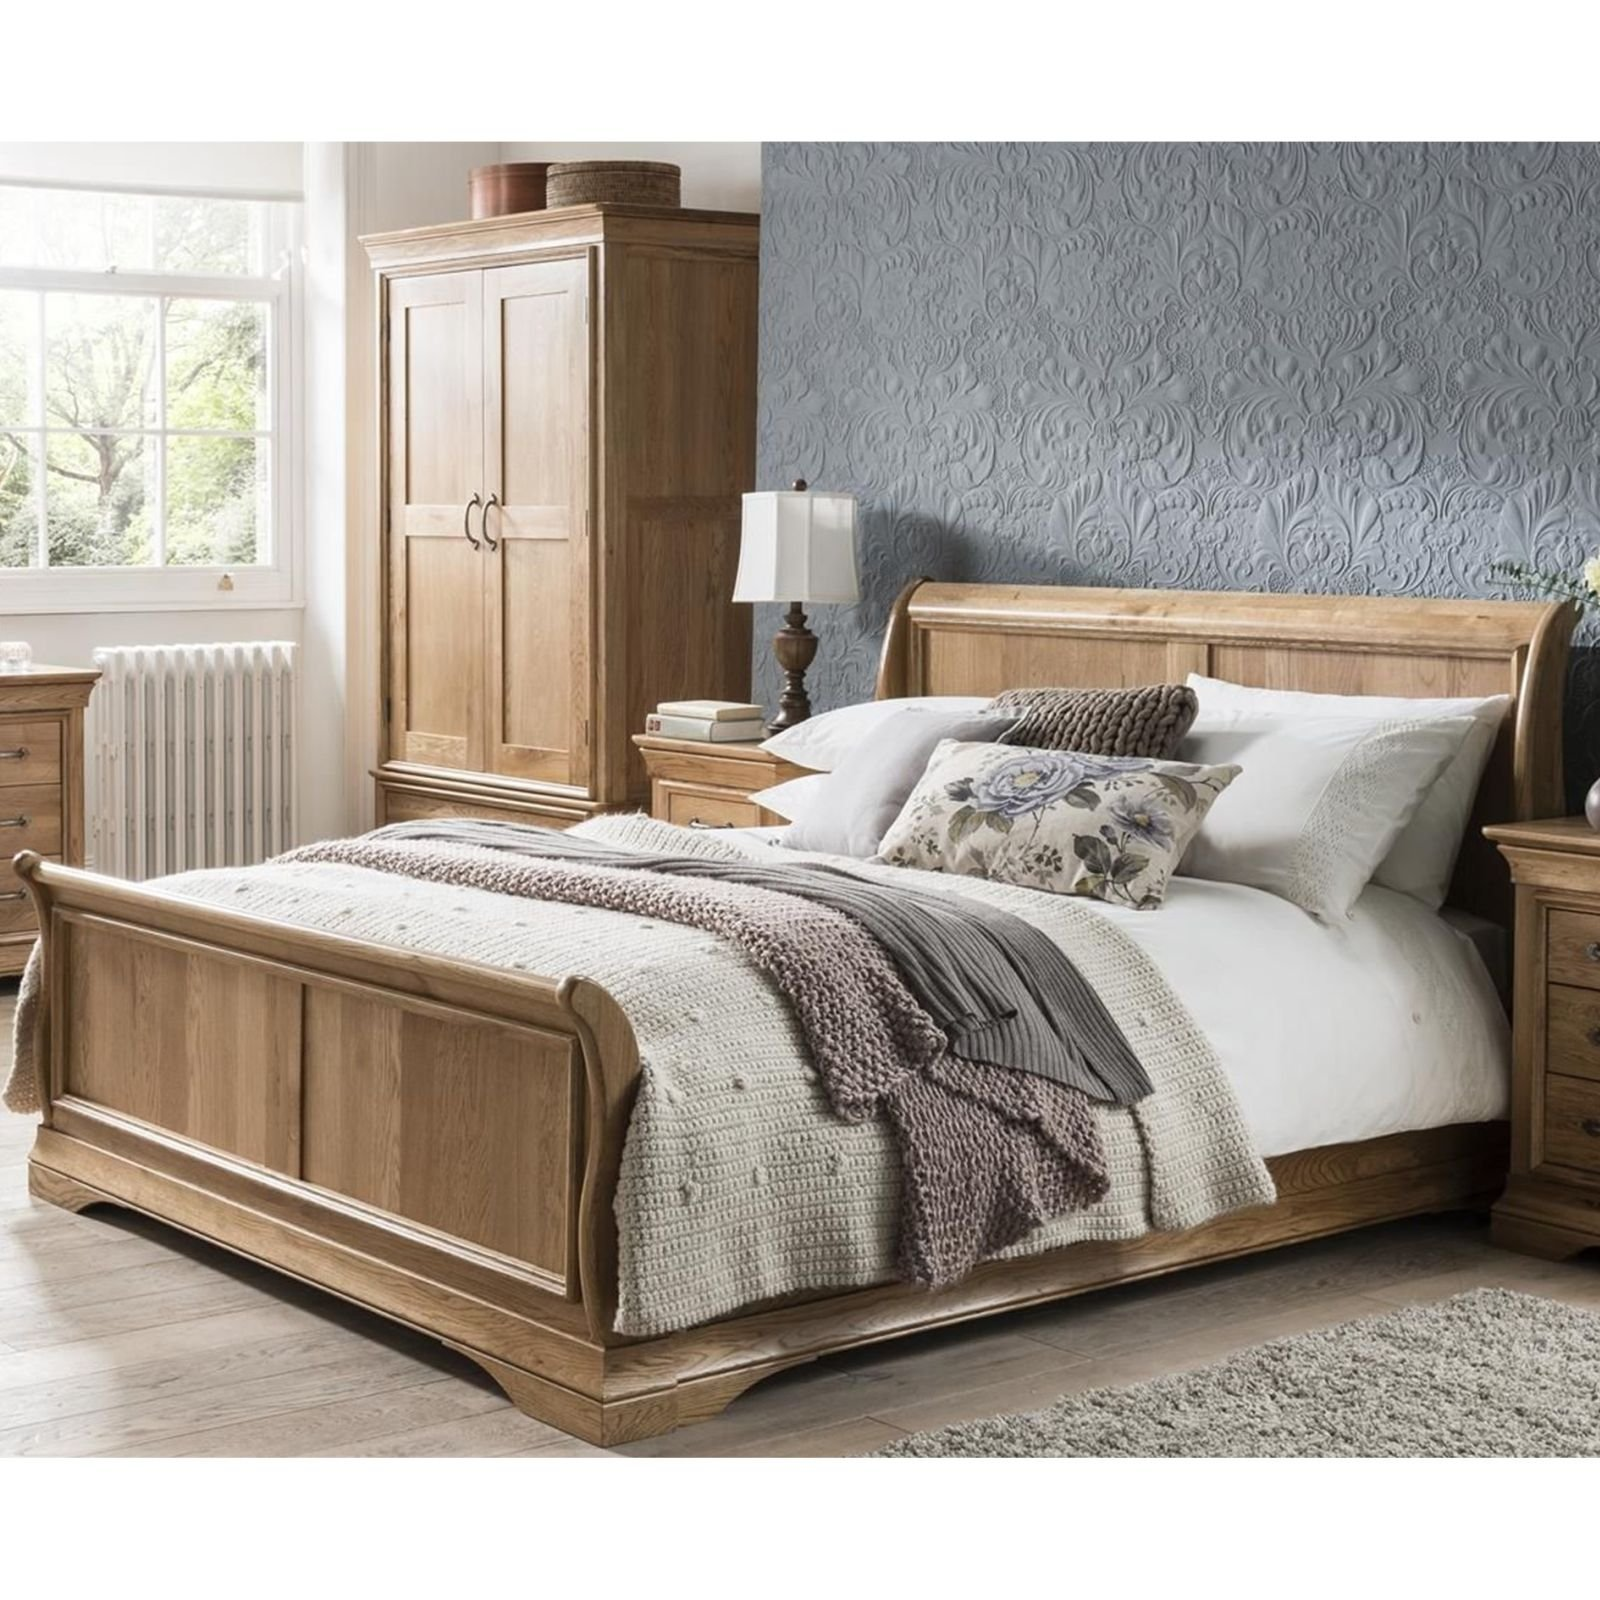 - French Solid Oak 5' King Size Sleigh Bed: Amazon.co.uk: Kitchen & Home